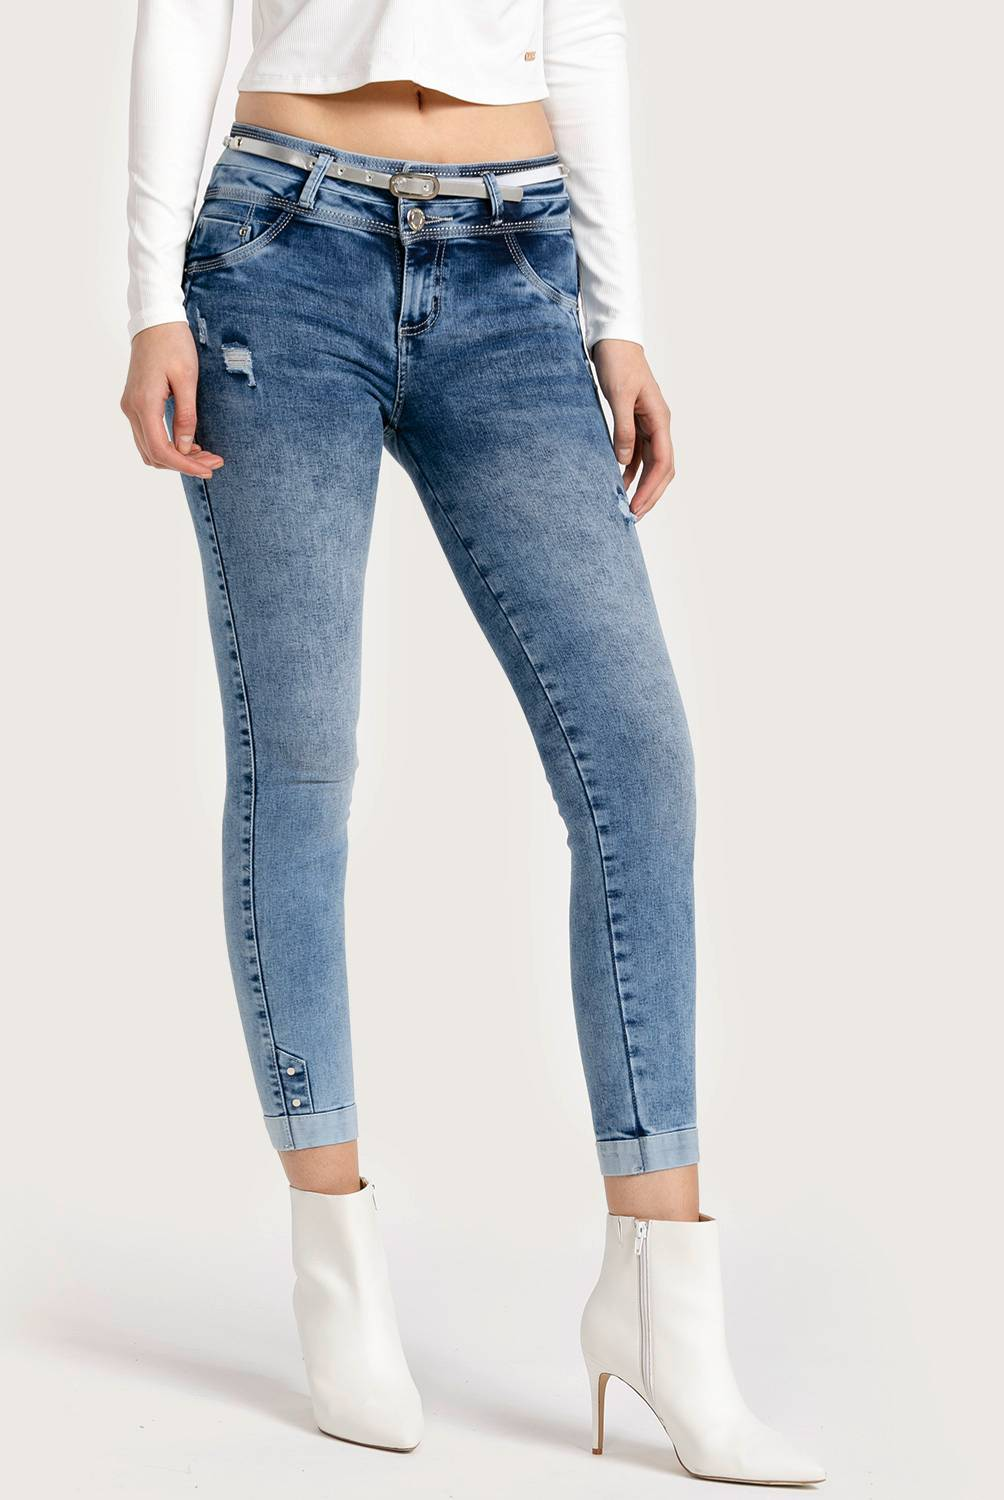 Mossimo - Jeans Skinny Push Up Mujer